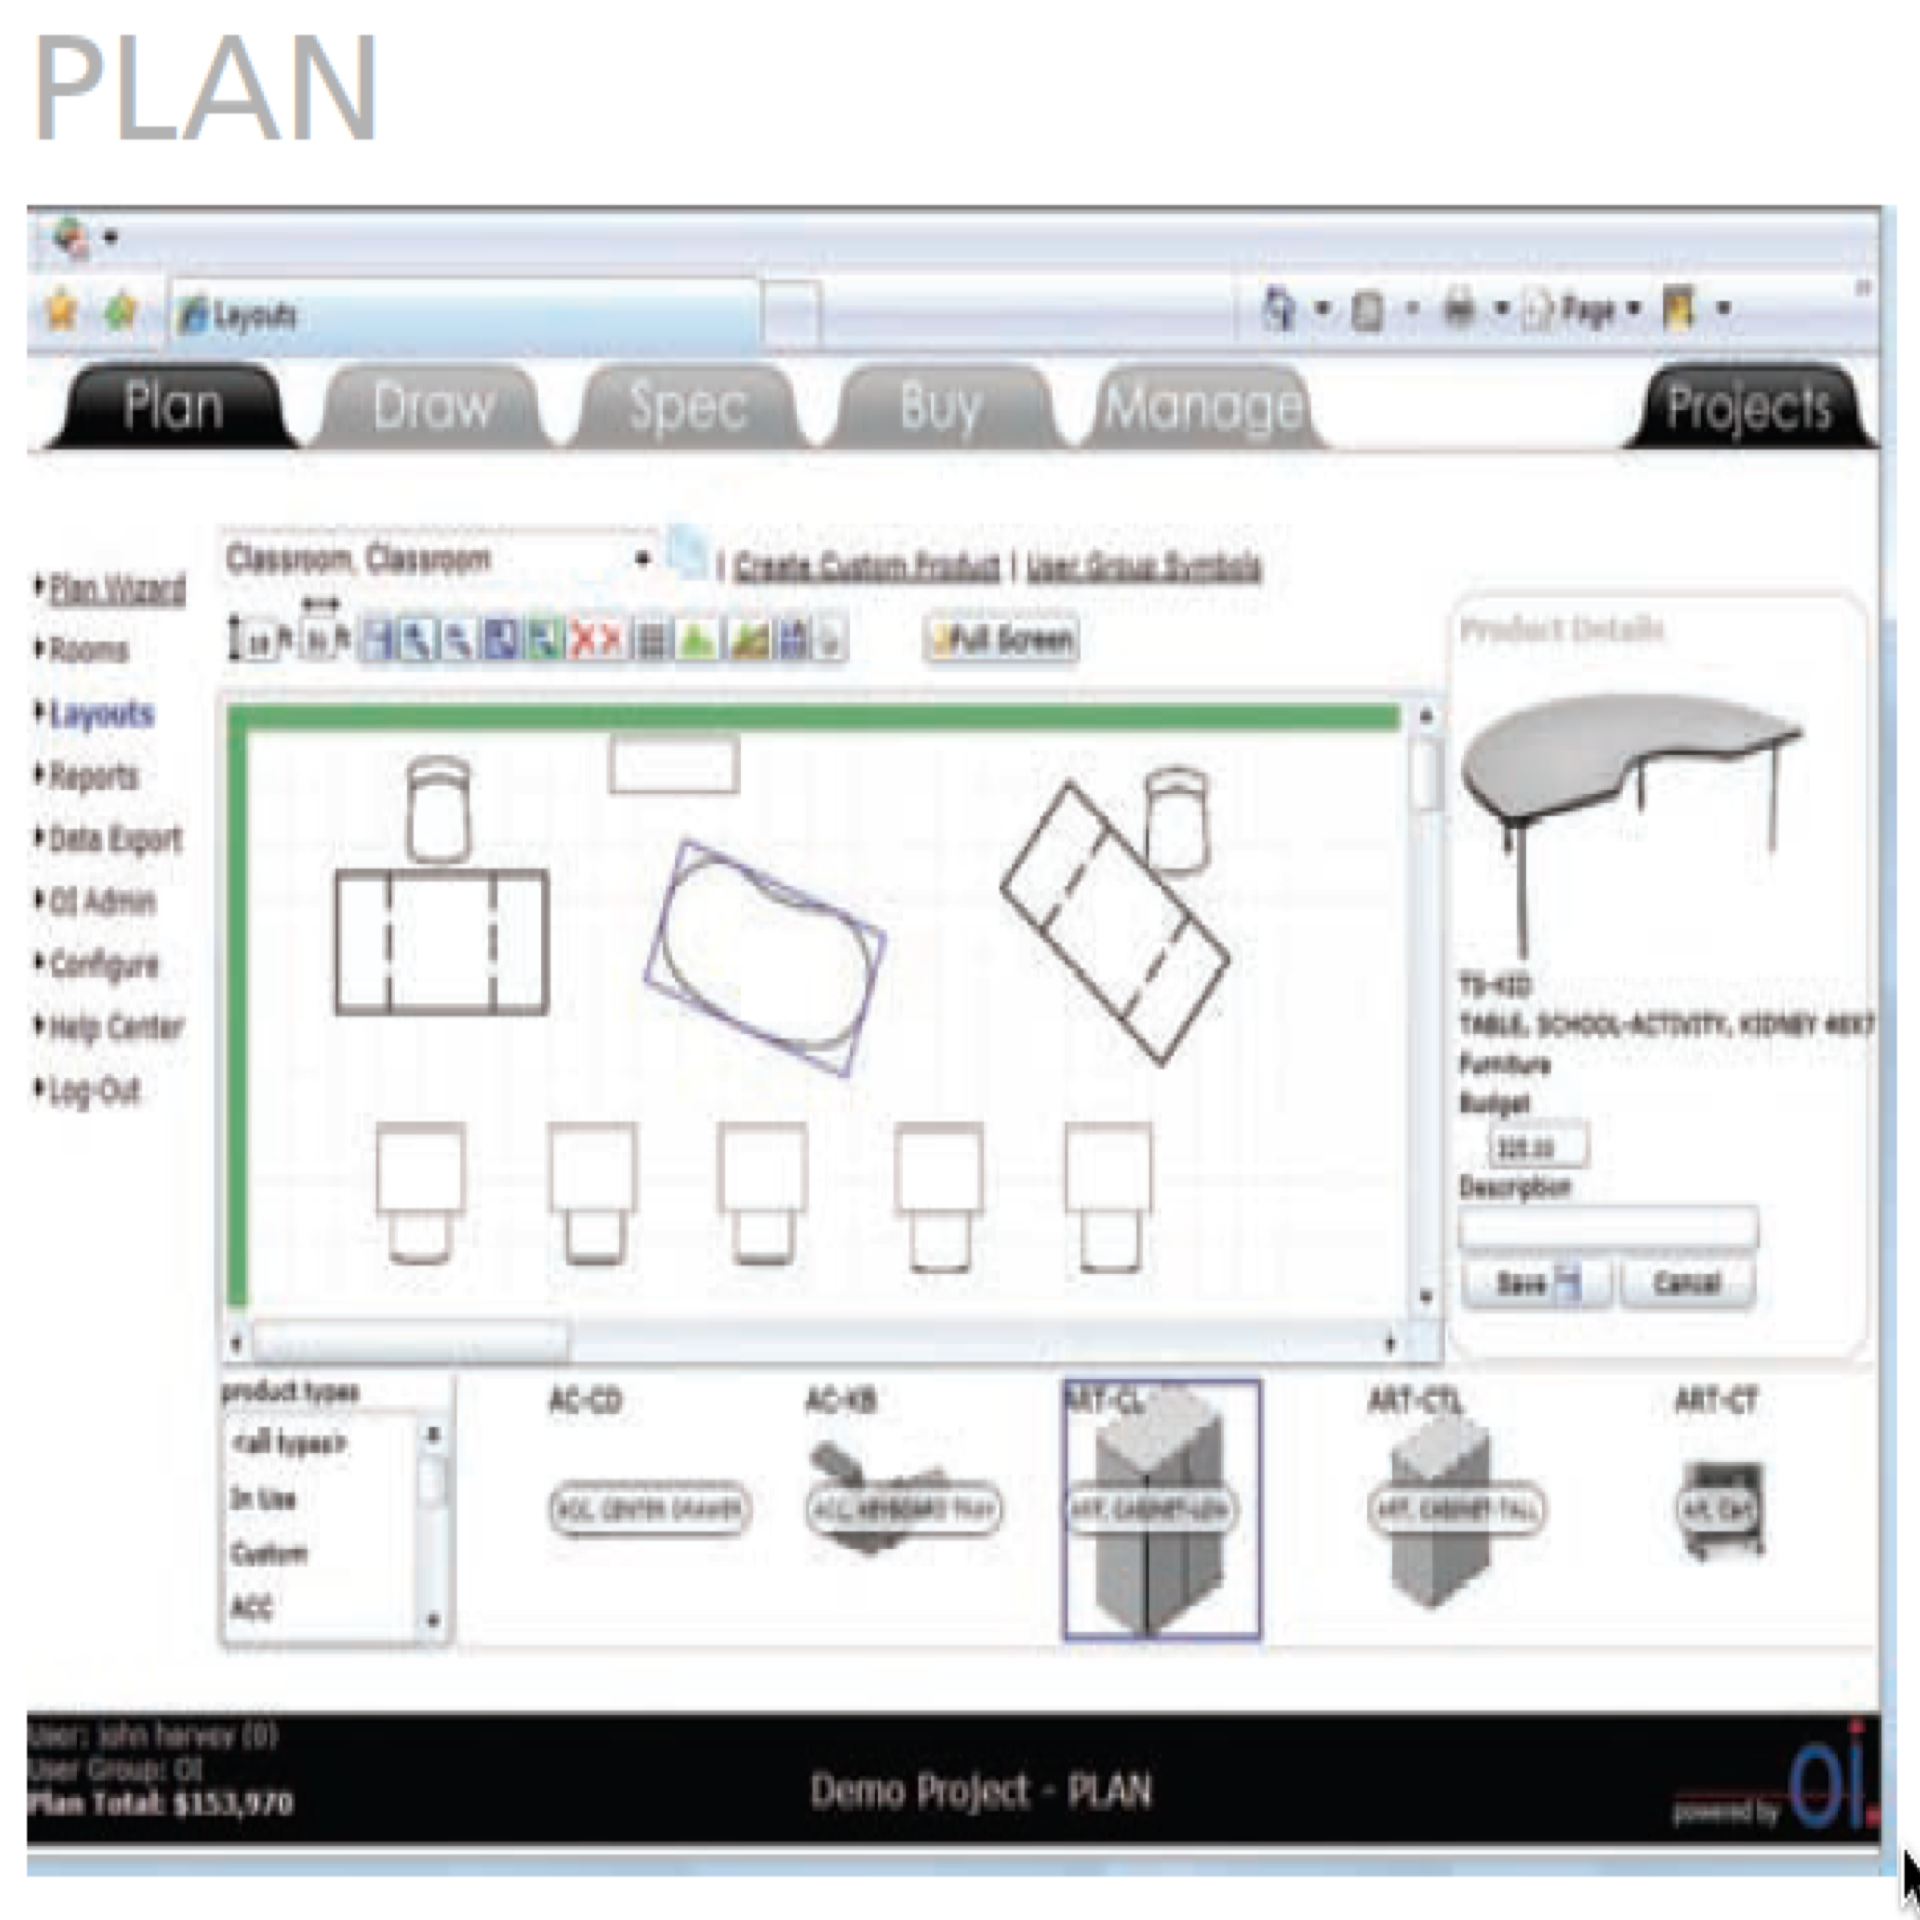 The PLAN MODULE Provides A Unique Room Planning And Project Budgeting Tool Our Drag Drop Design Environment Wizard Library Allow Users To